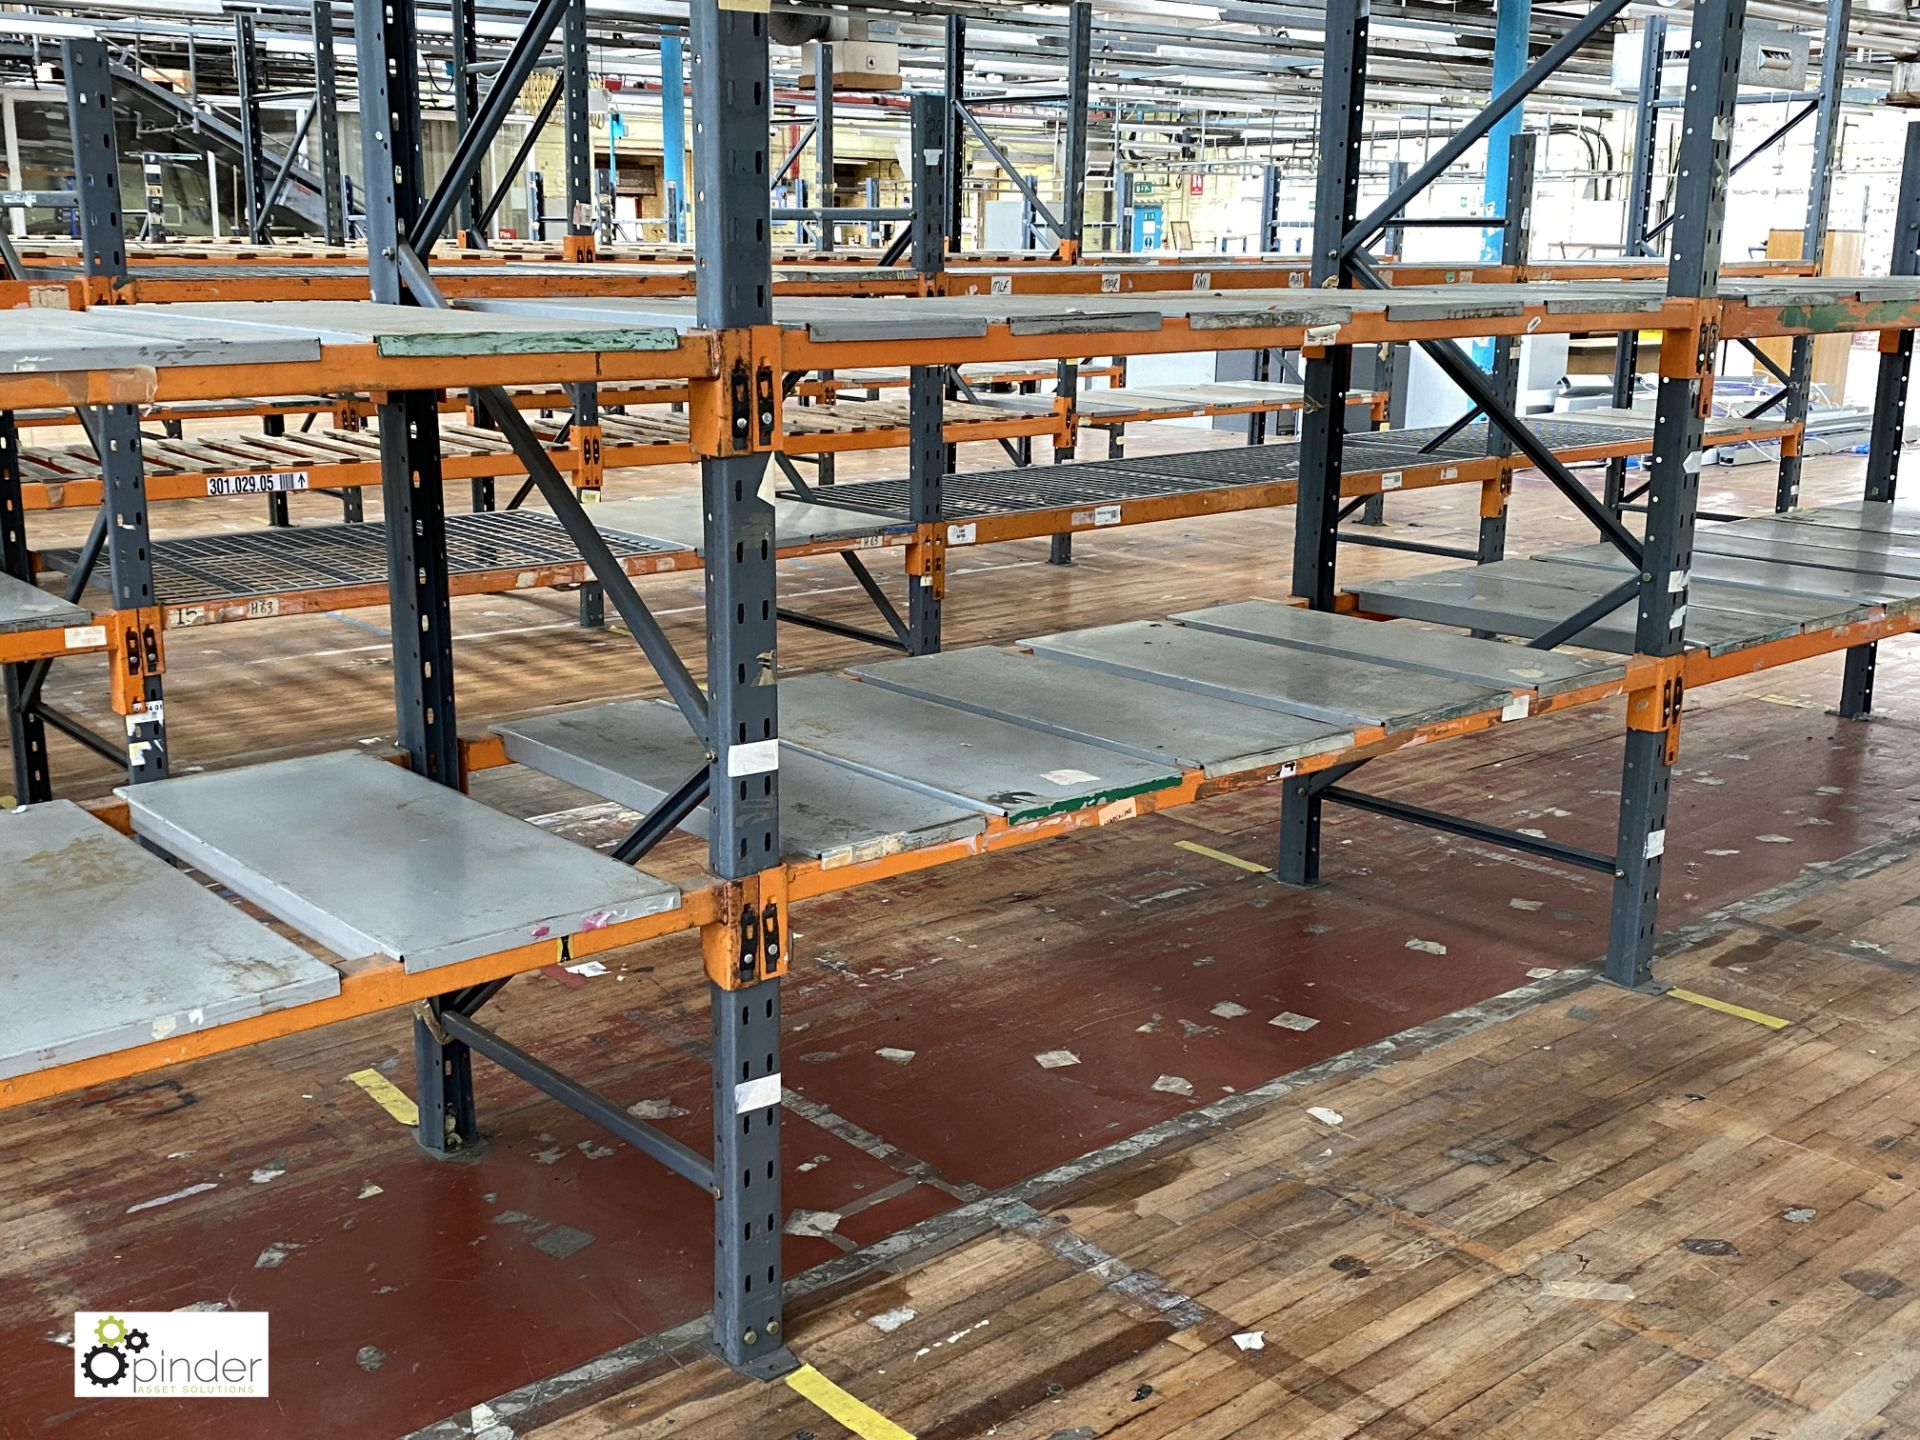 11 bays Dexion Speedlock boltless Racking, comprising 9 uprights 2440mm x 910mm, 3 uprights 1835mm x - Image 4 of 5